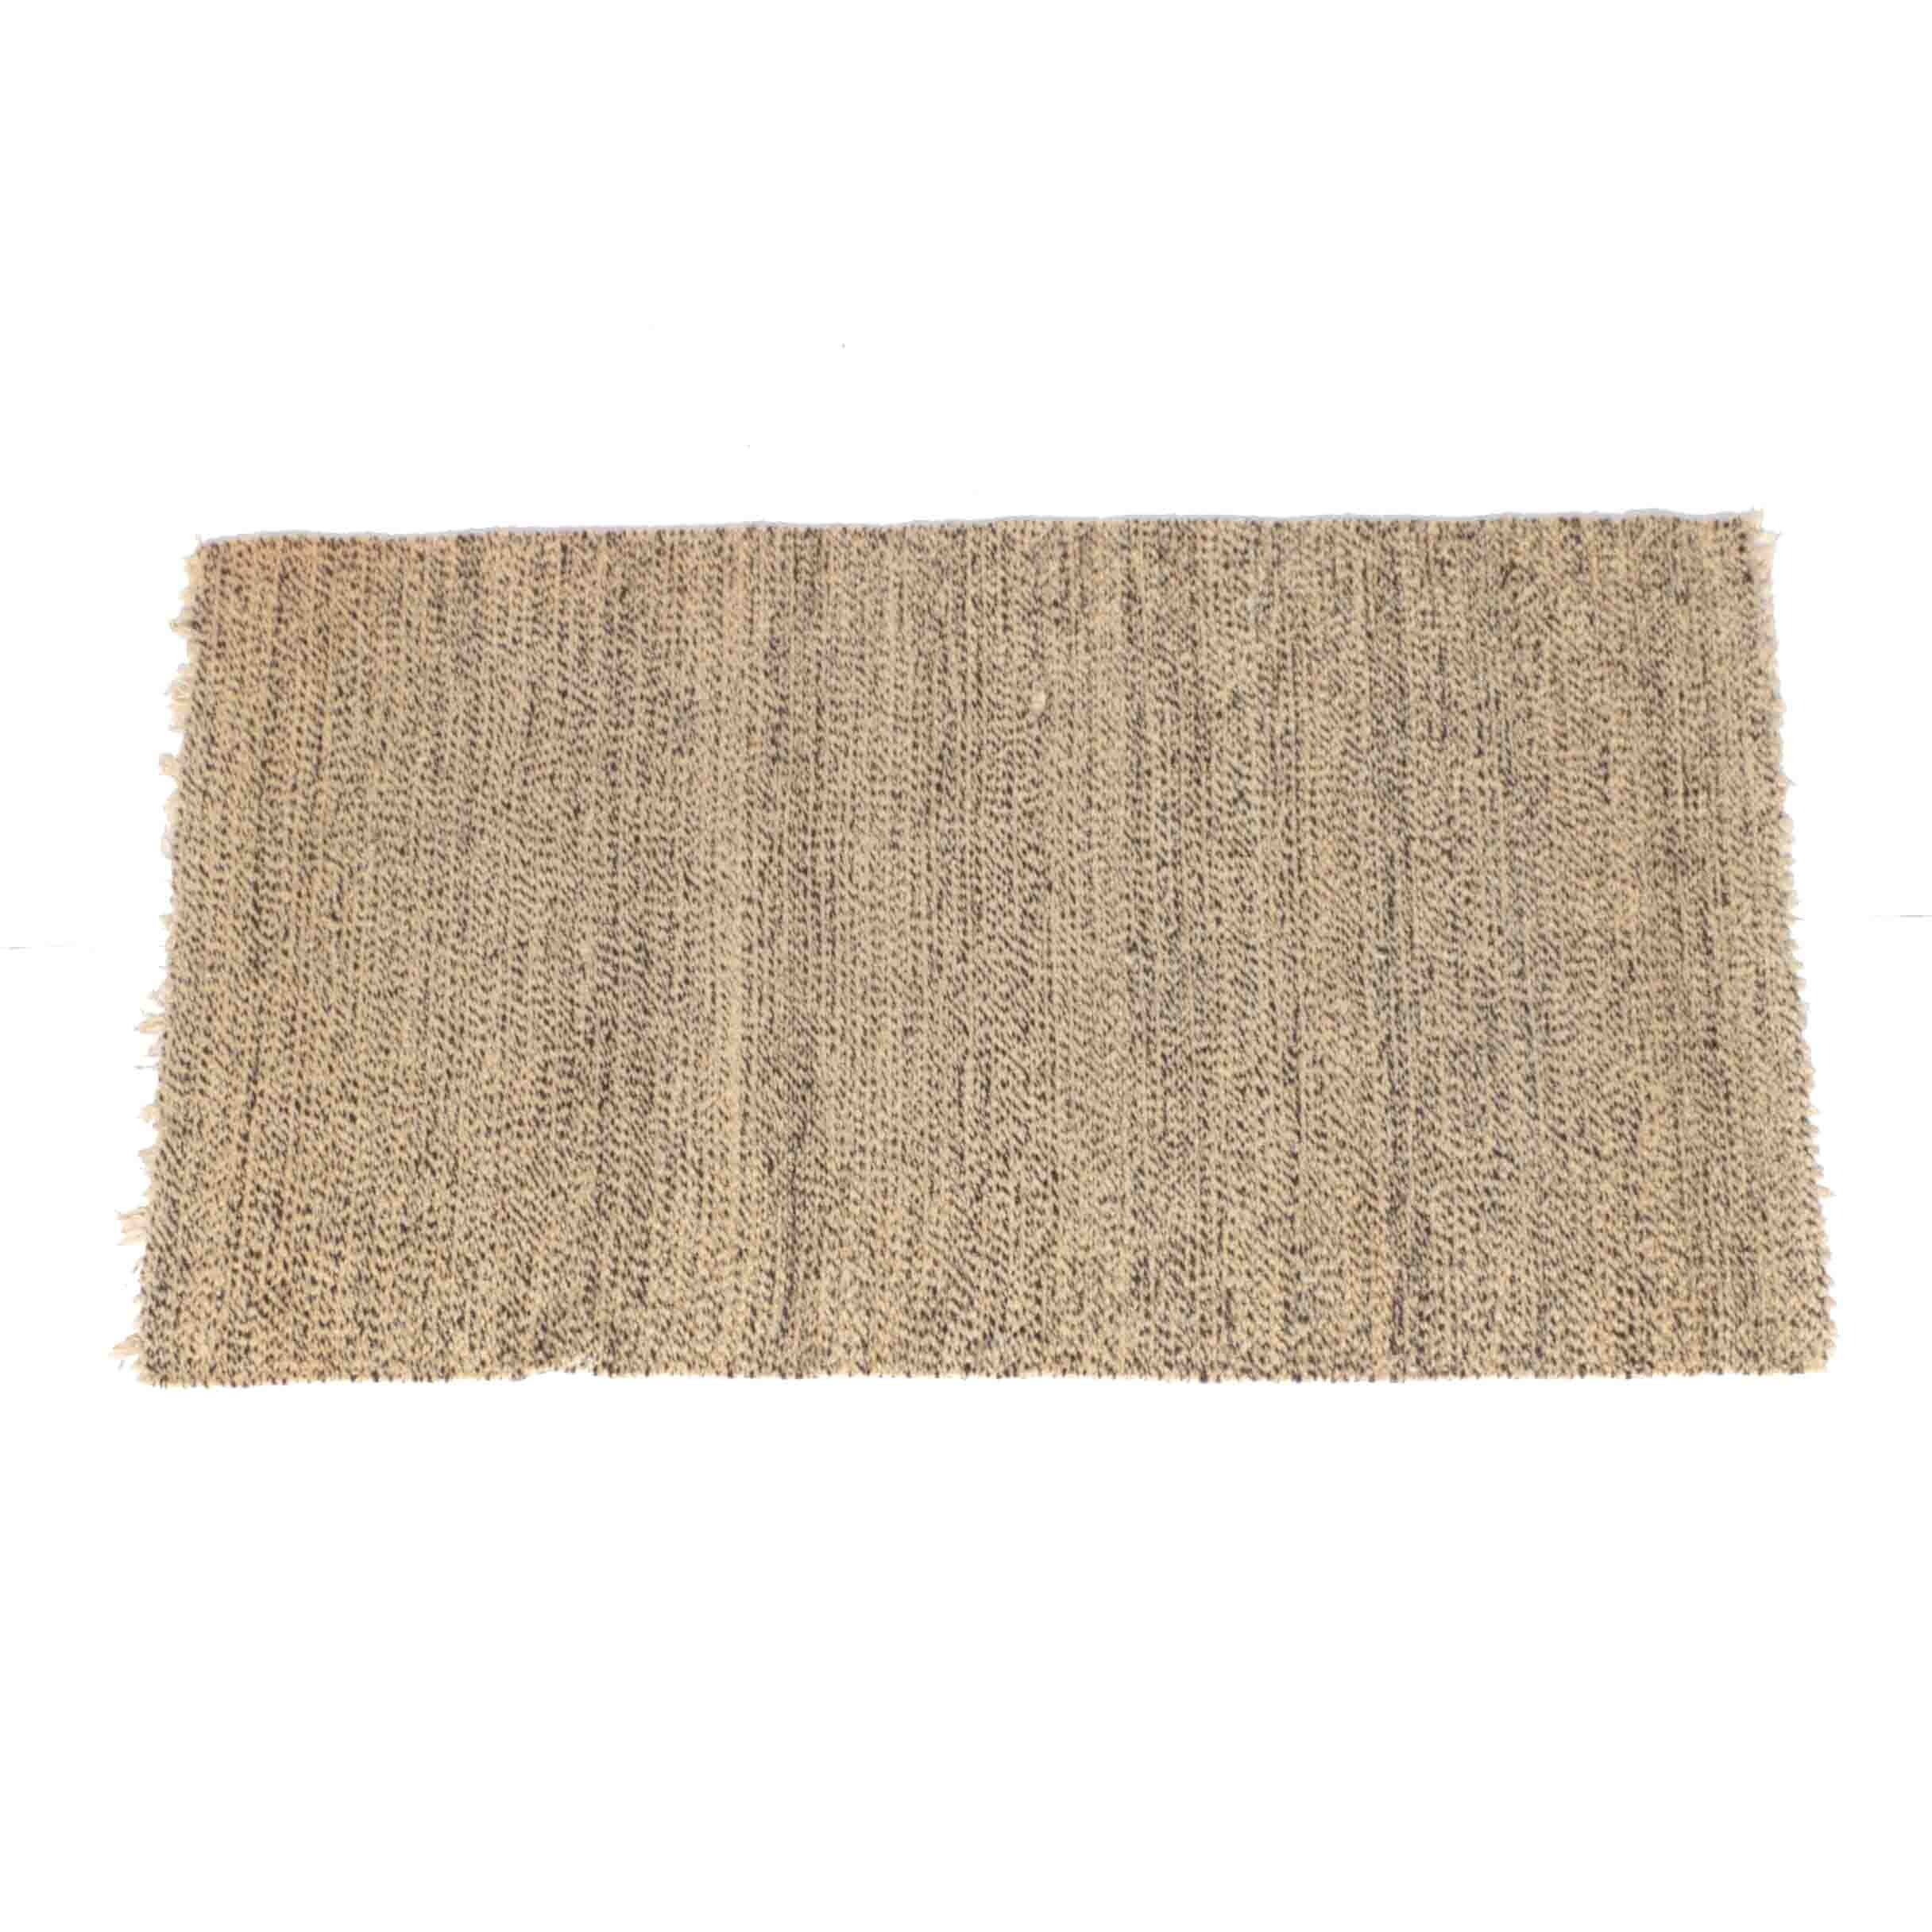 Handwoven Tan and Brown Speckled Wool Area Rug